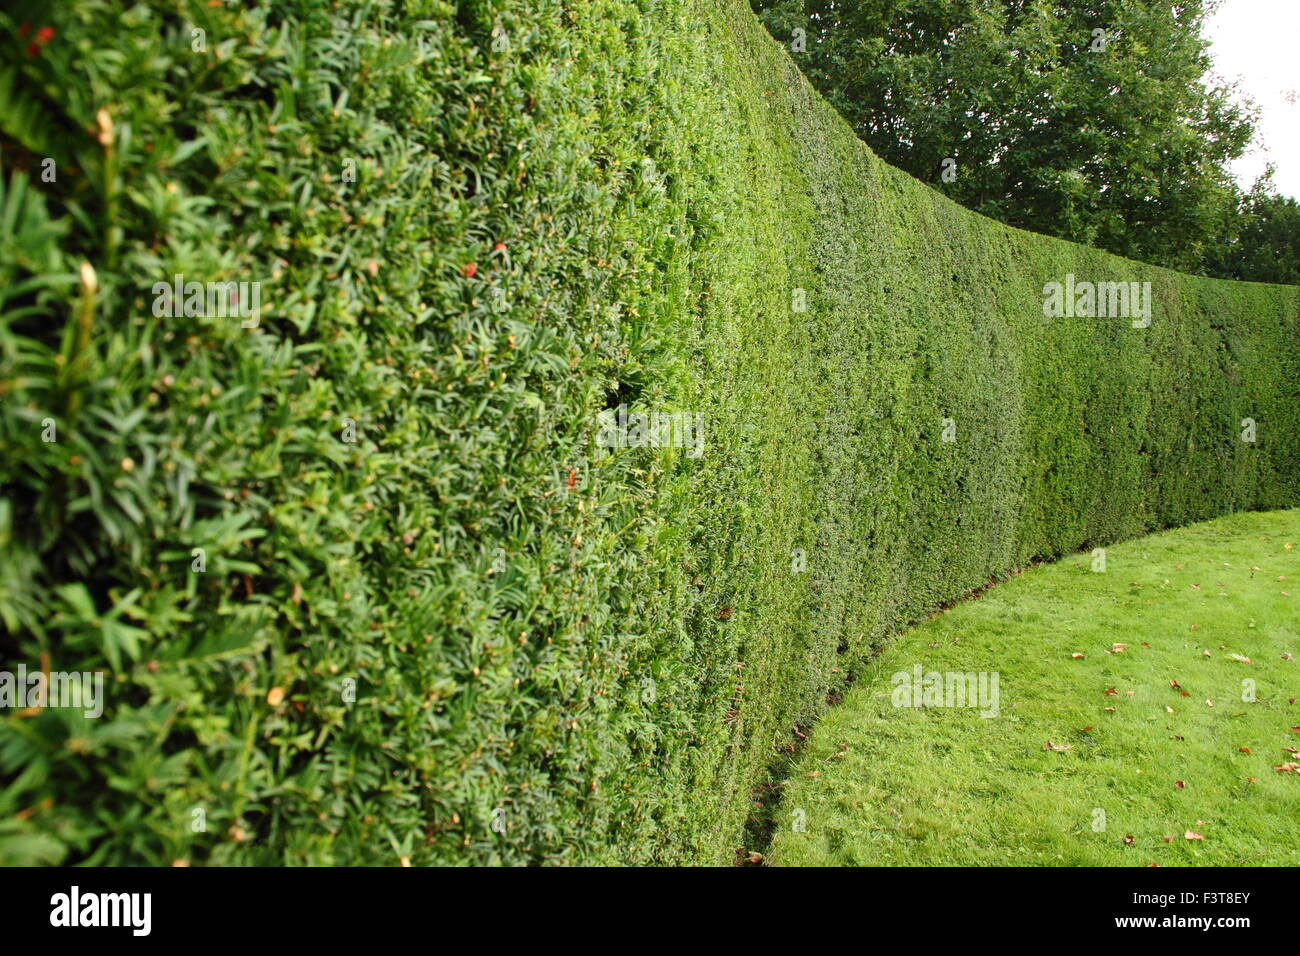 A neatly clipped yew tree hedge (taxus) frames a formal garden at Rufford Abbey, Nottinghamshire, England, UK - Stock Image